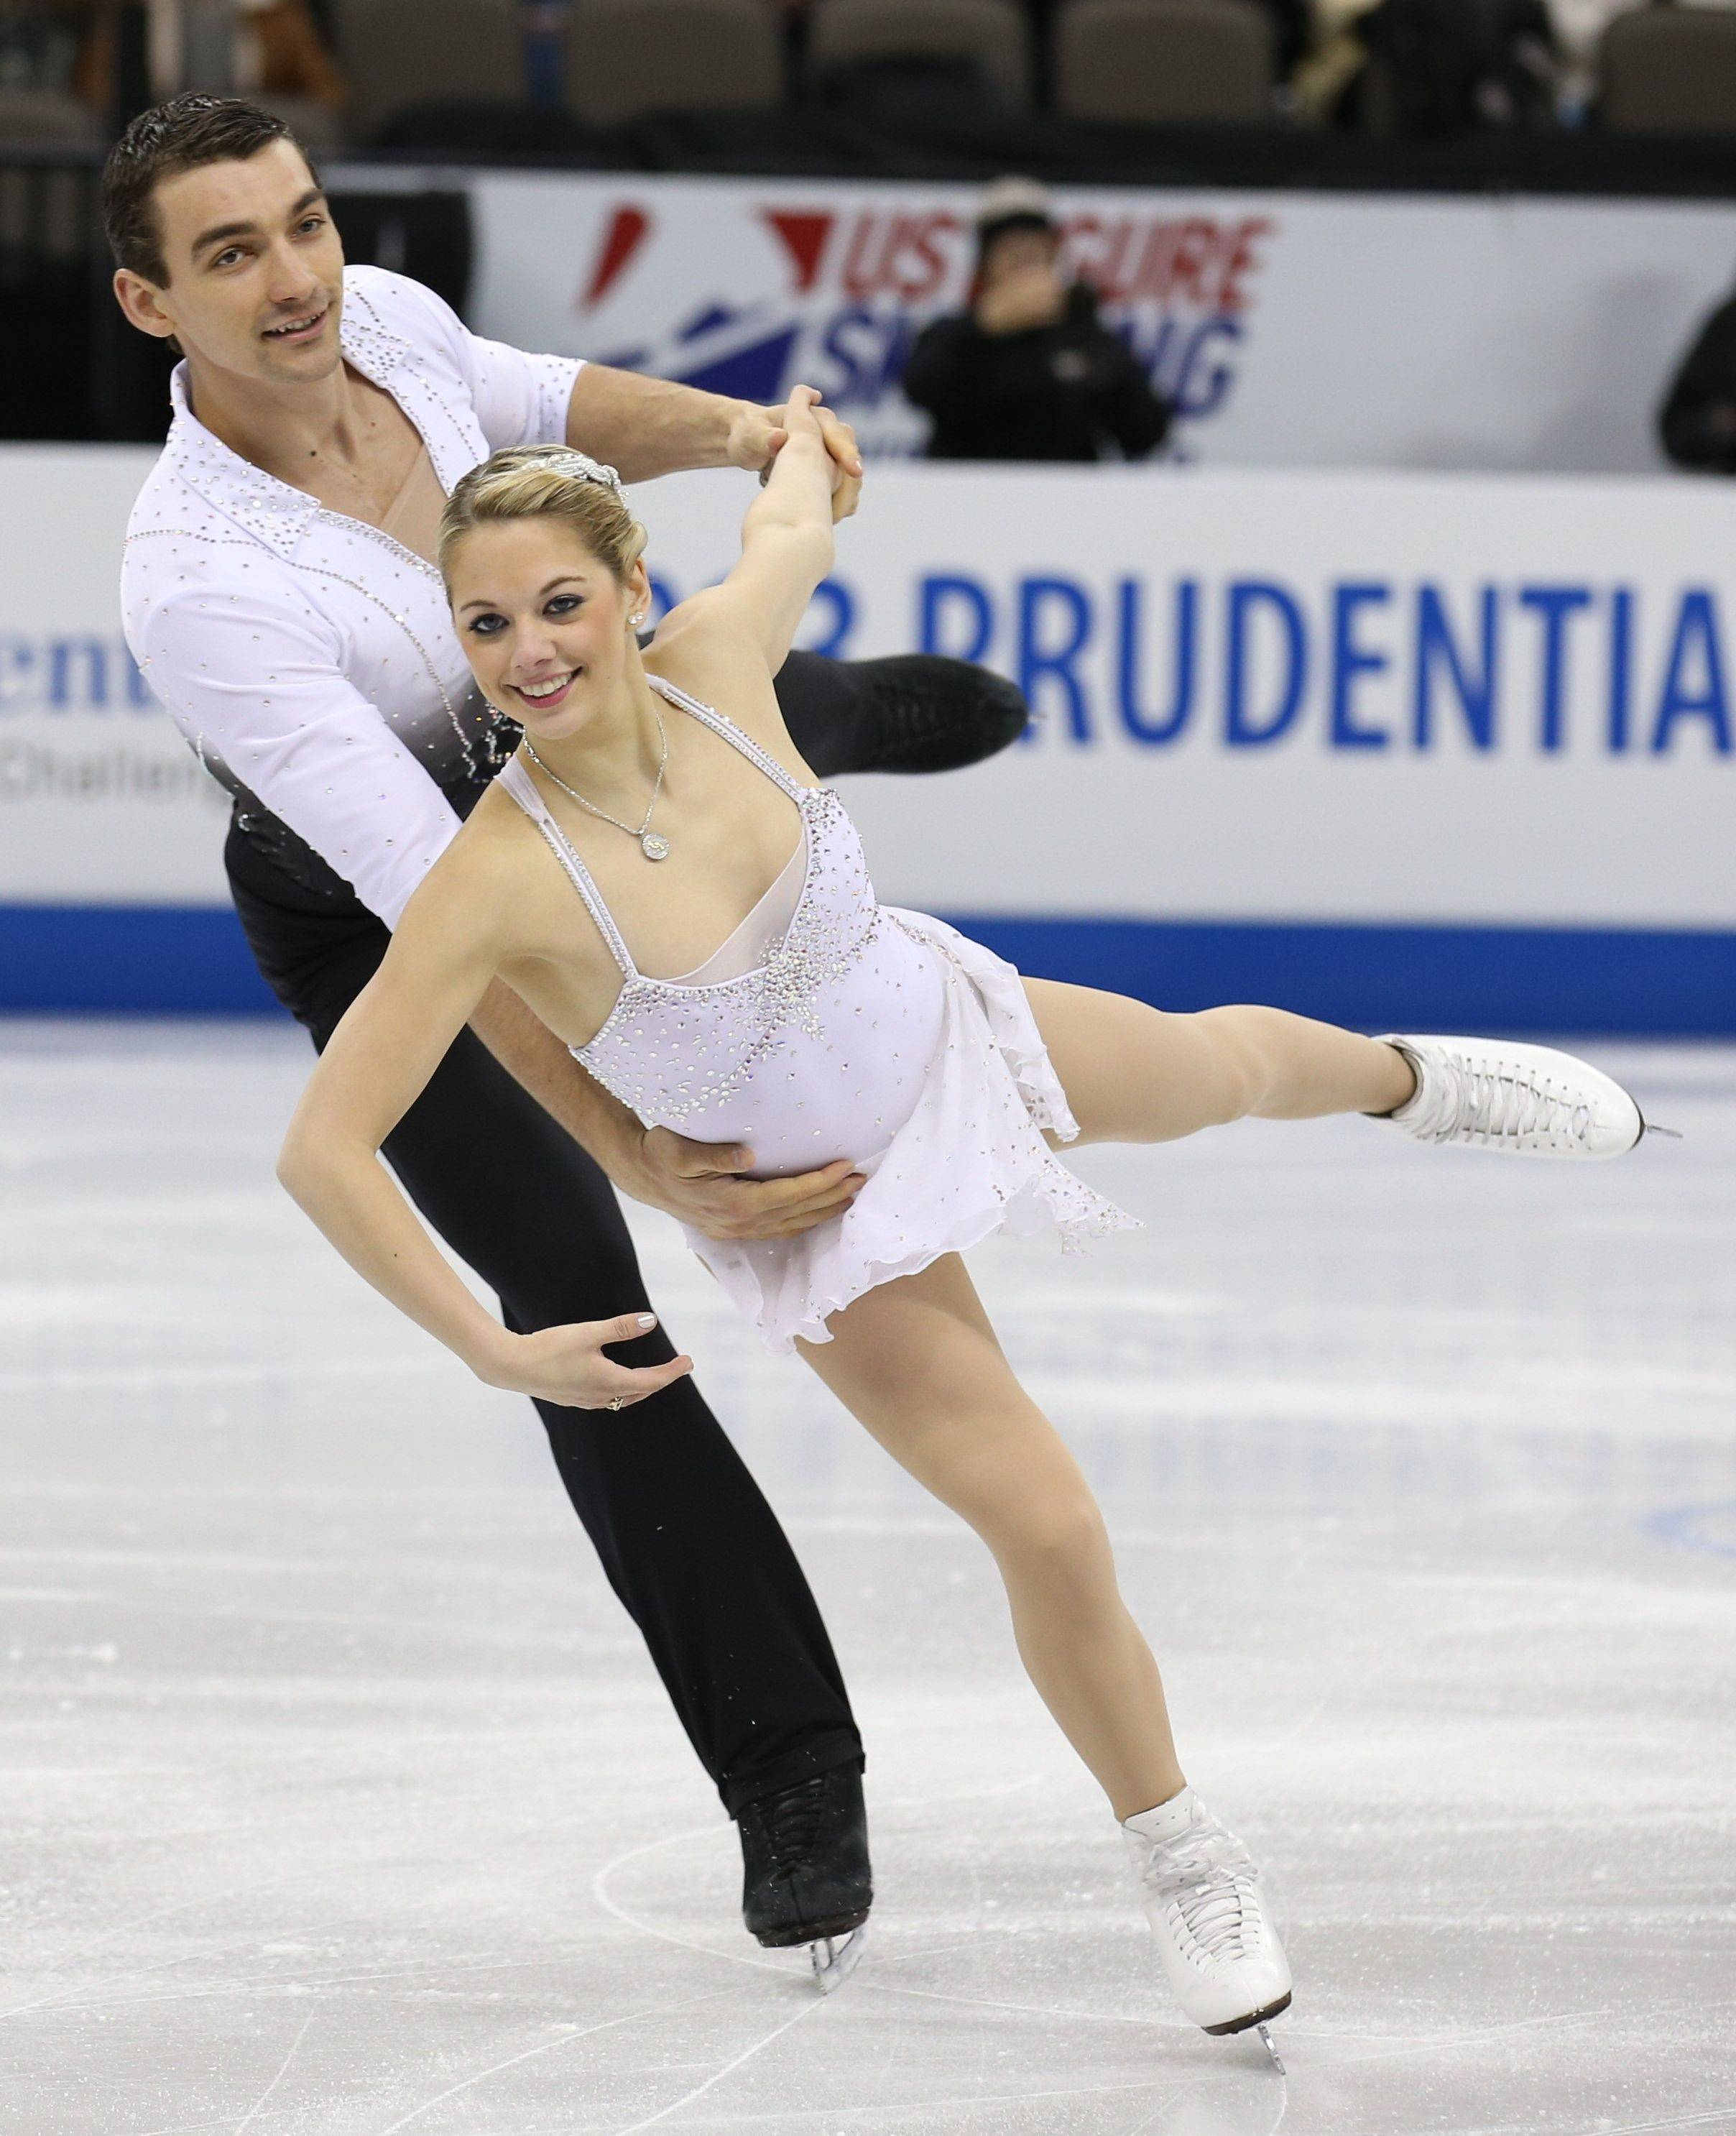 Addison figure skater's Olympic hopes hinge on weekend performances